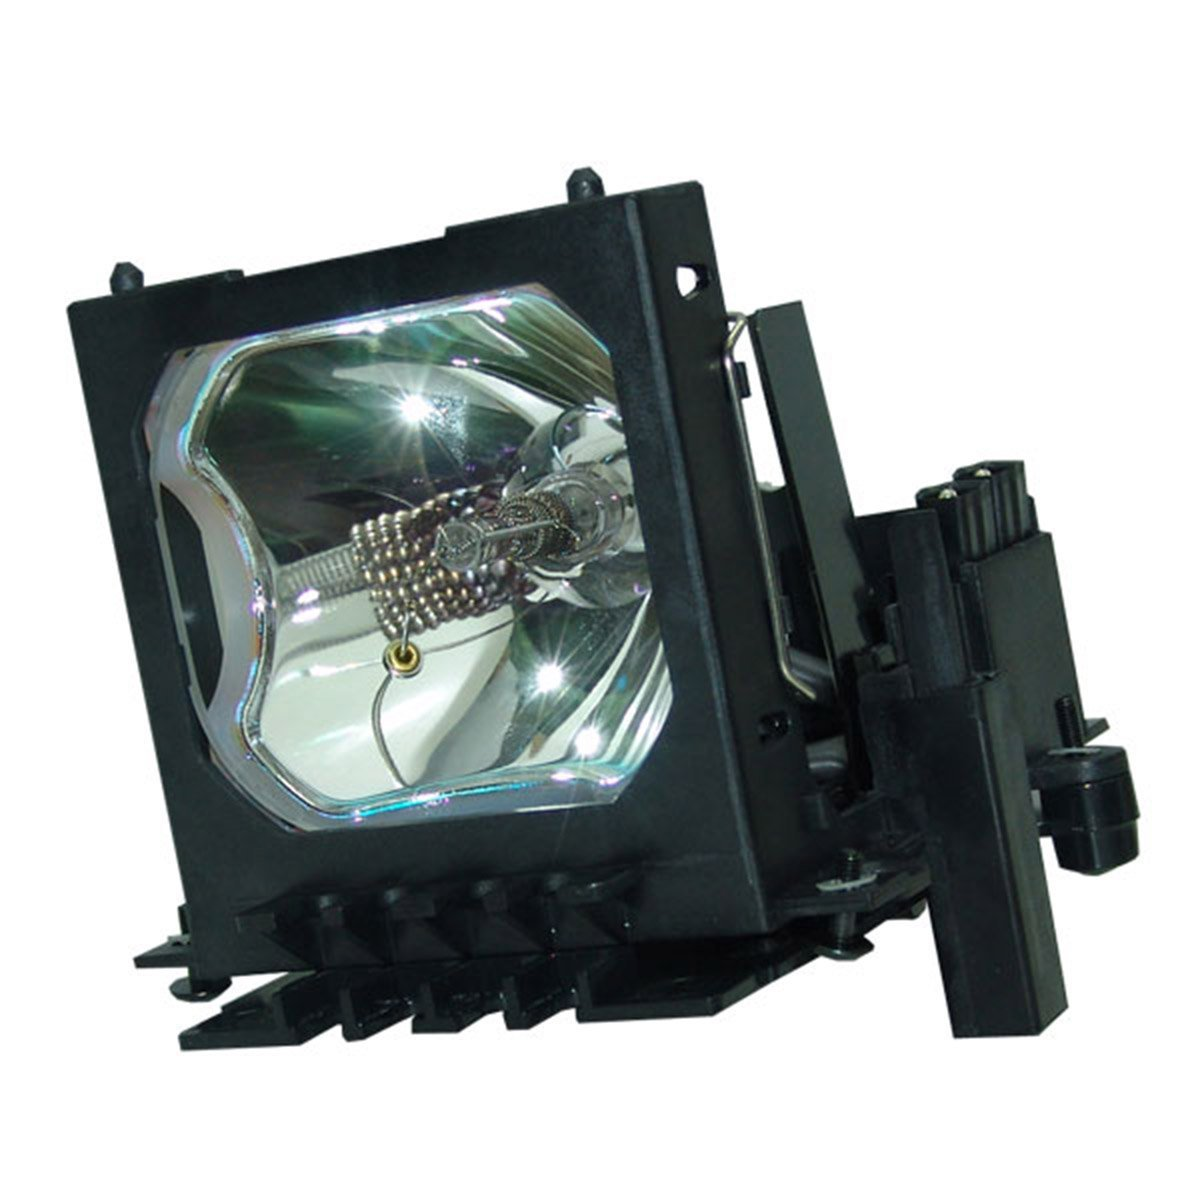 Projector Lamp Bulb DT00591 DT-00591 for HITACHI CP-X1200 CP-X1200W CP-X1200WA with housing compatible projector lamp bulb dt01151 with housing for hitachi cp rx79 ed x26 cp rx82 cp rx93